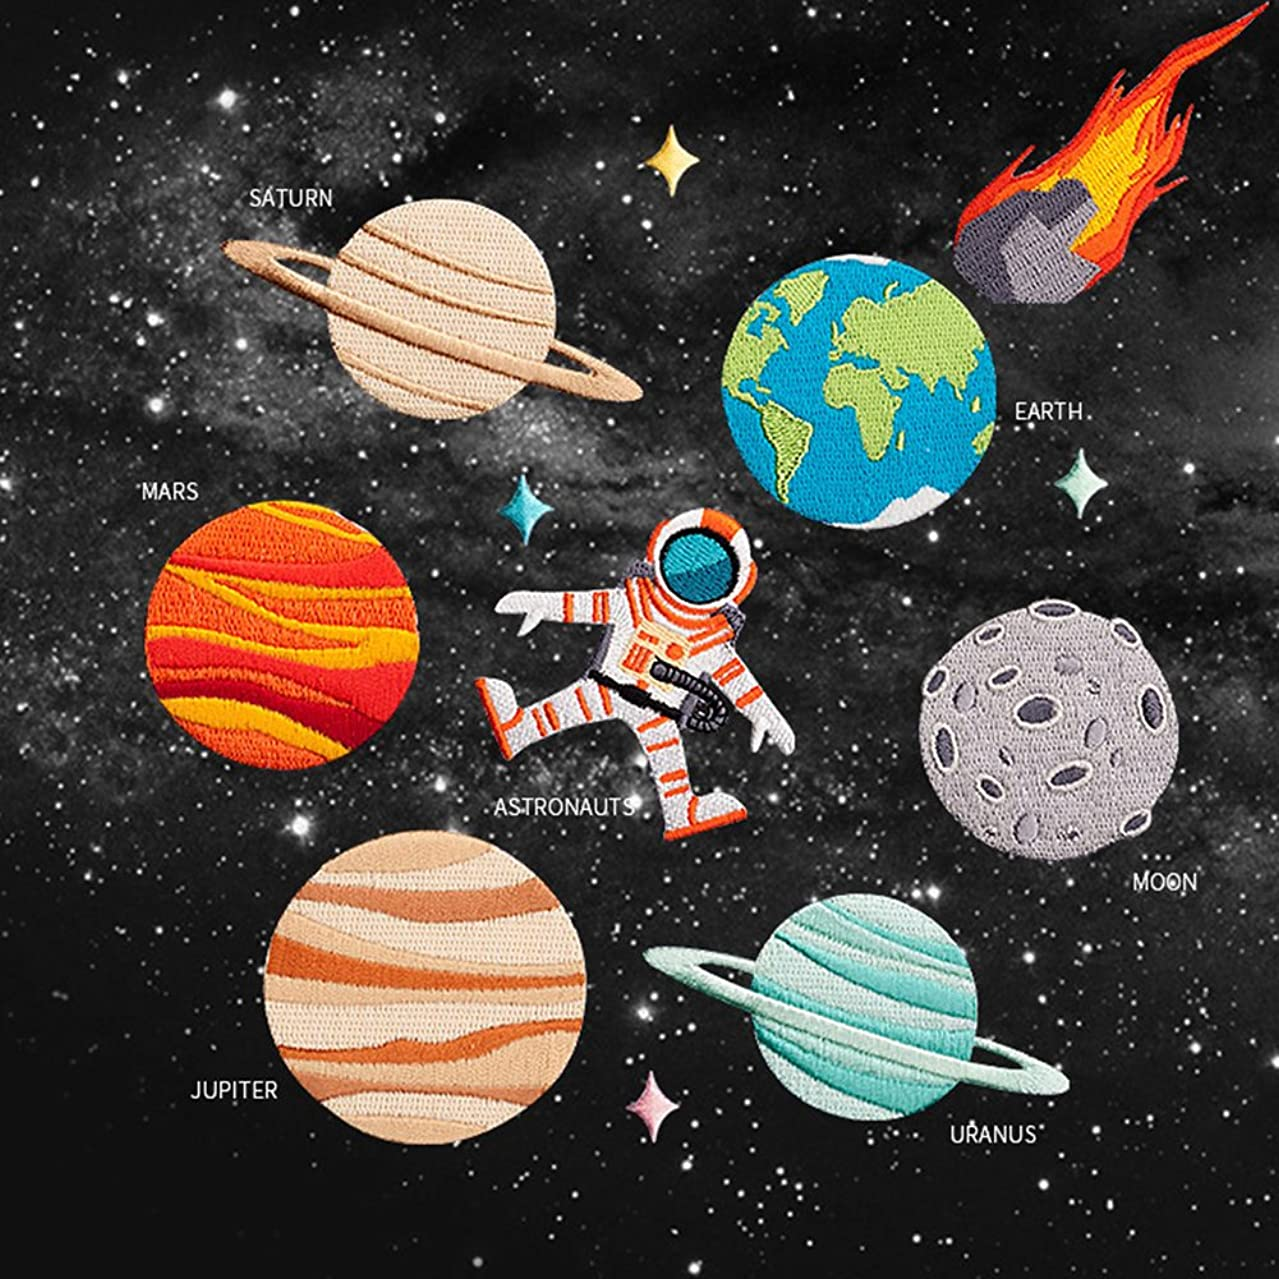 Joylish 12 Set Space Planet Iron on Patches, Embroidery Astronaut Pacth Badges for DIY Clothing Jeans Backpack Jackets - Space, Planets and Astronaut